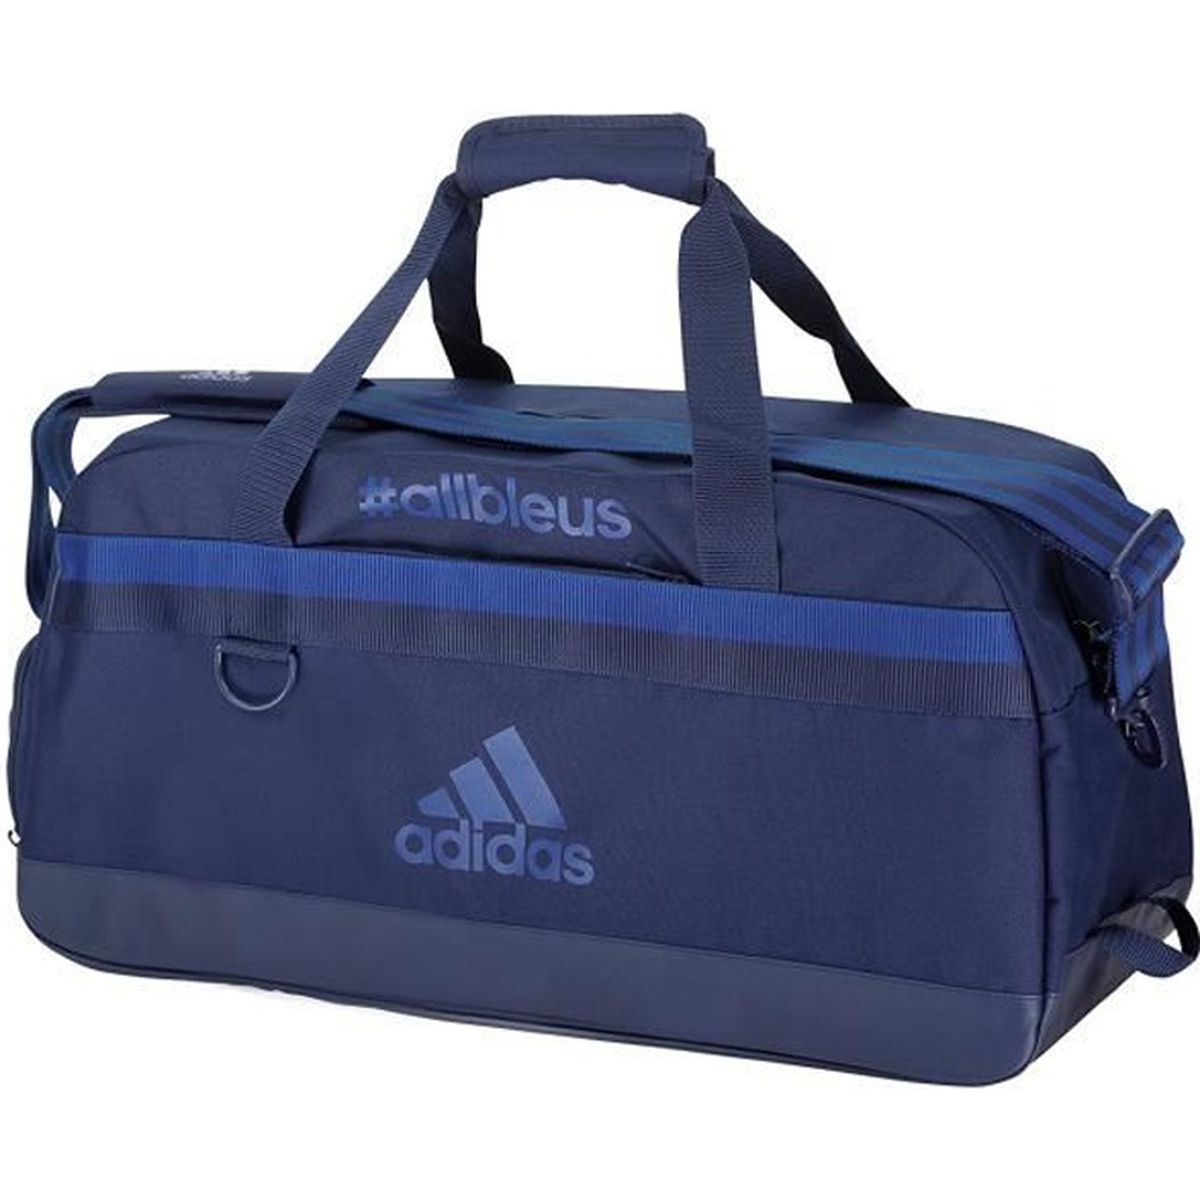 Sac Adidas Teambag  Allbleus Marine Taille L - Prix pas cher - Cdiscount 788fed82eecf